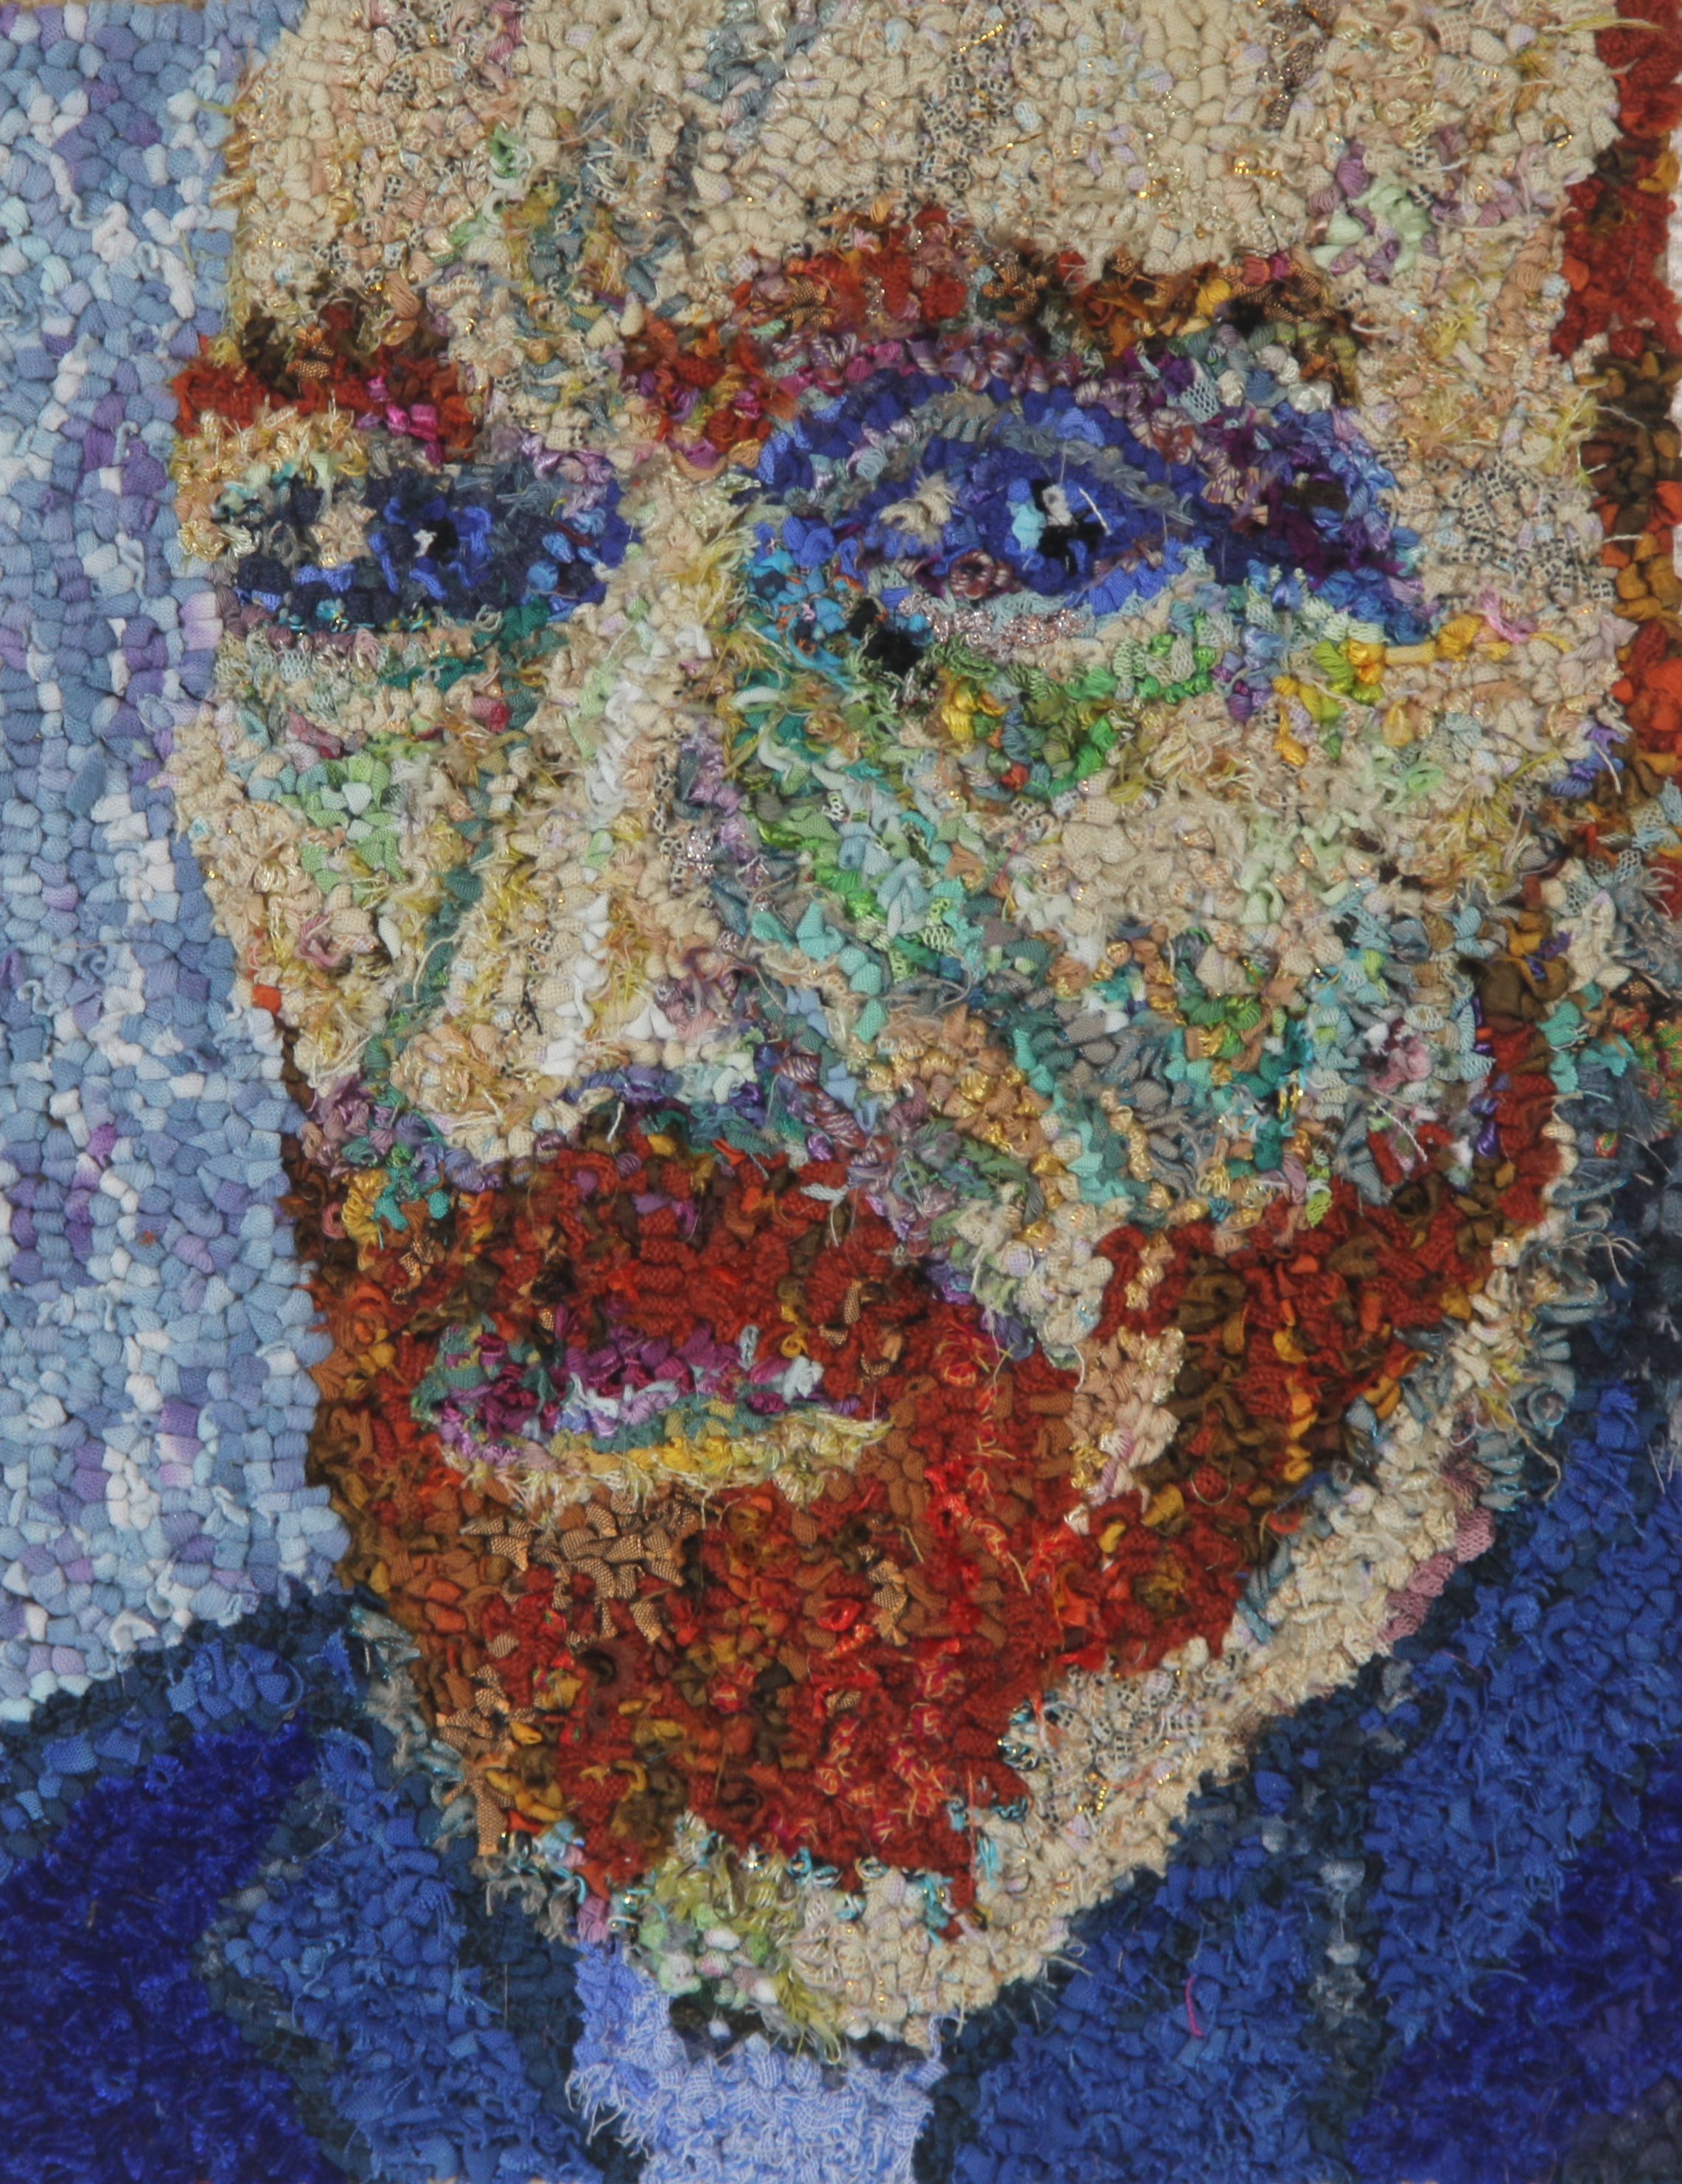 Vincent Van Gogh rag rug artwork made using old clothing and fabric offcuts